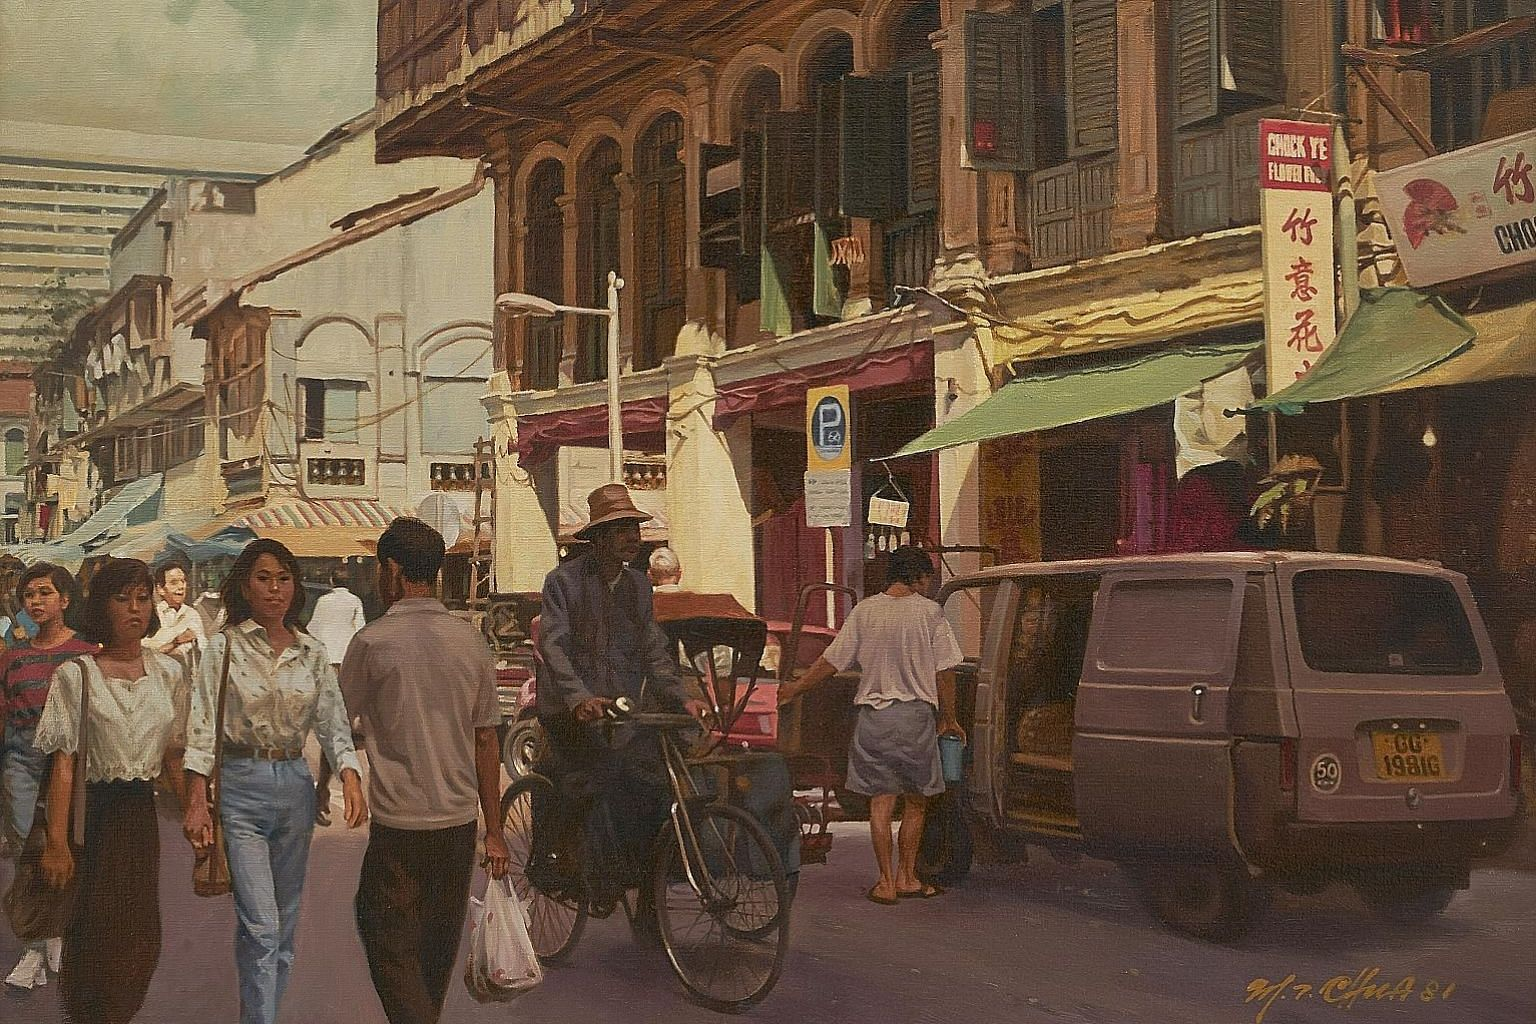 Chua Mia Tee's painting of 1980s Chinatown.